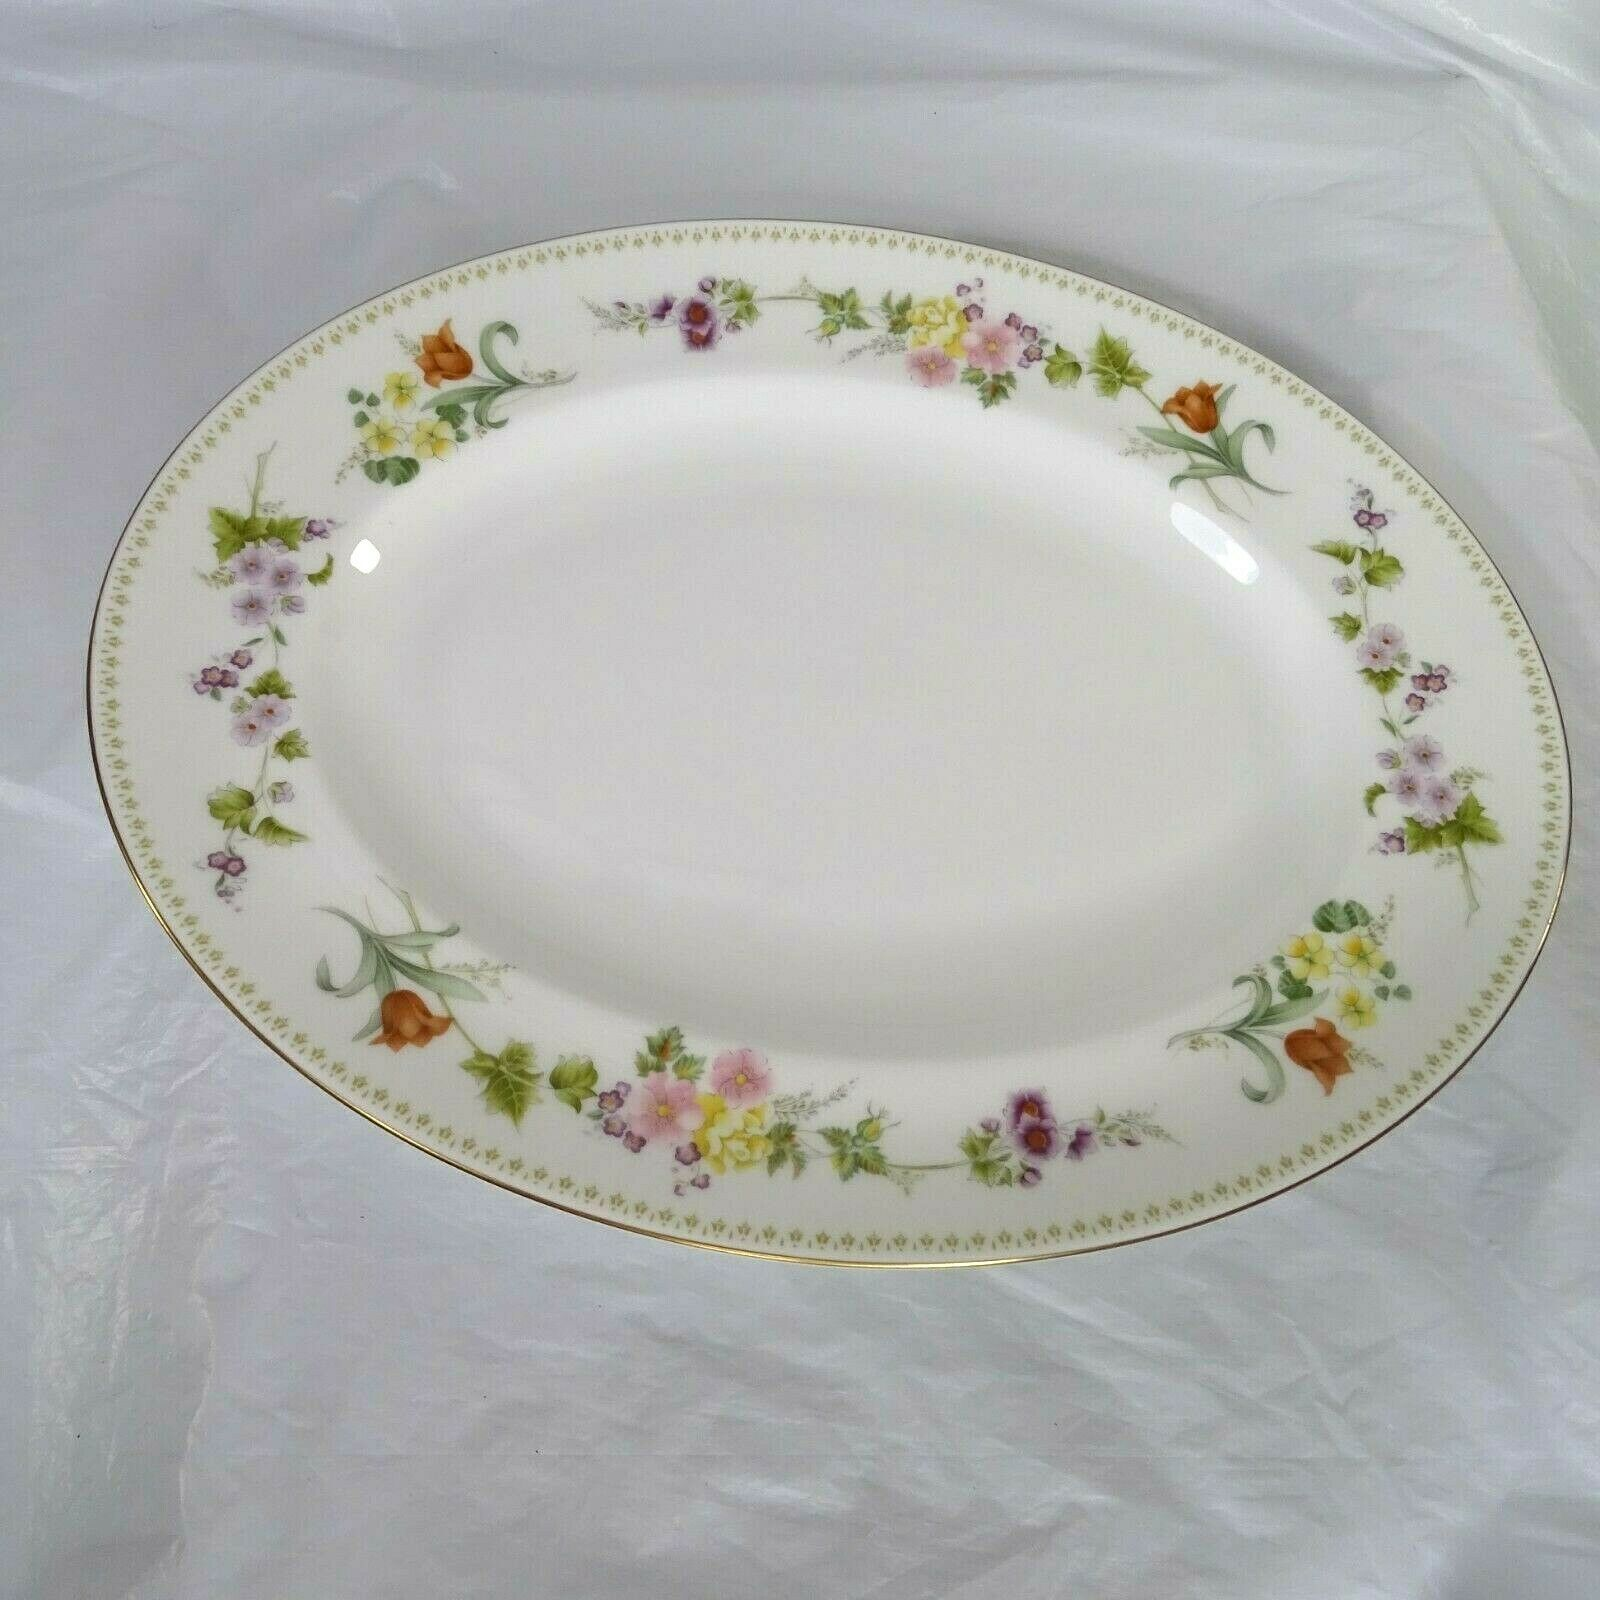 Primary image for Wedgwood Bone China Oval Platter Mirabelle R4537 Floral 14 x 11 Inch Gold Trim